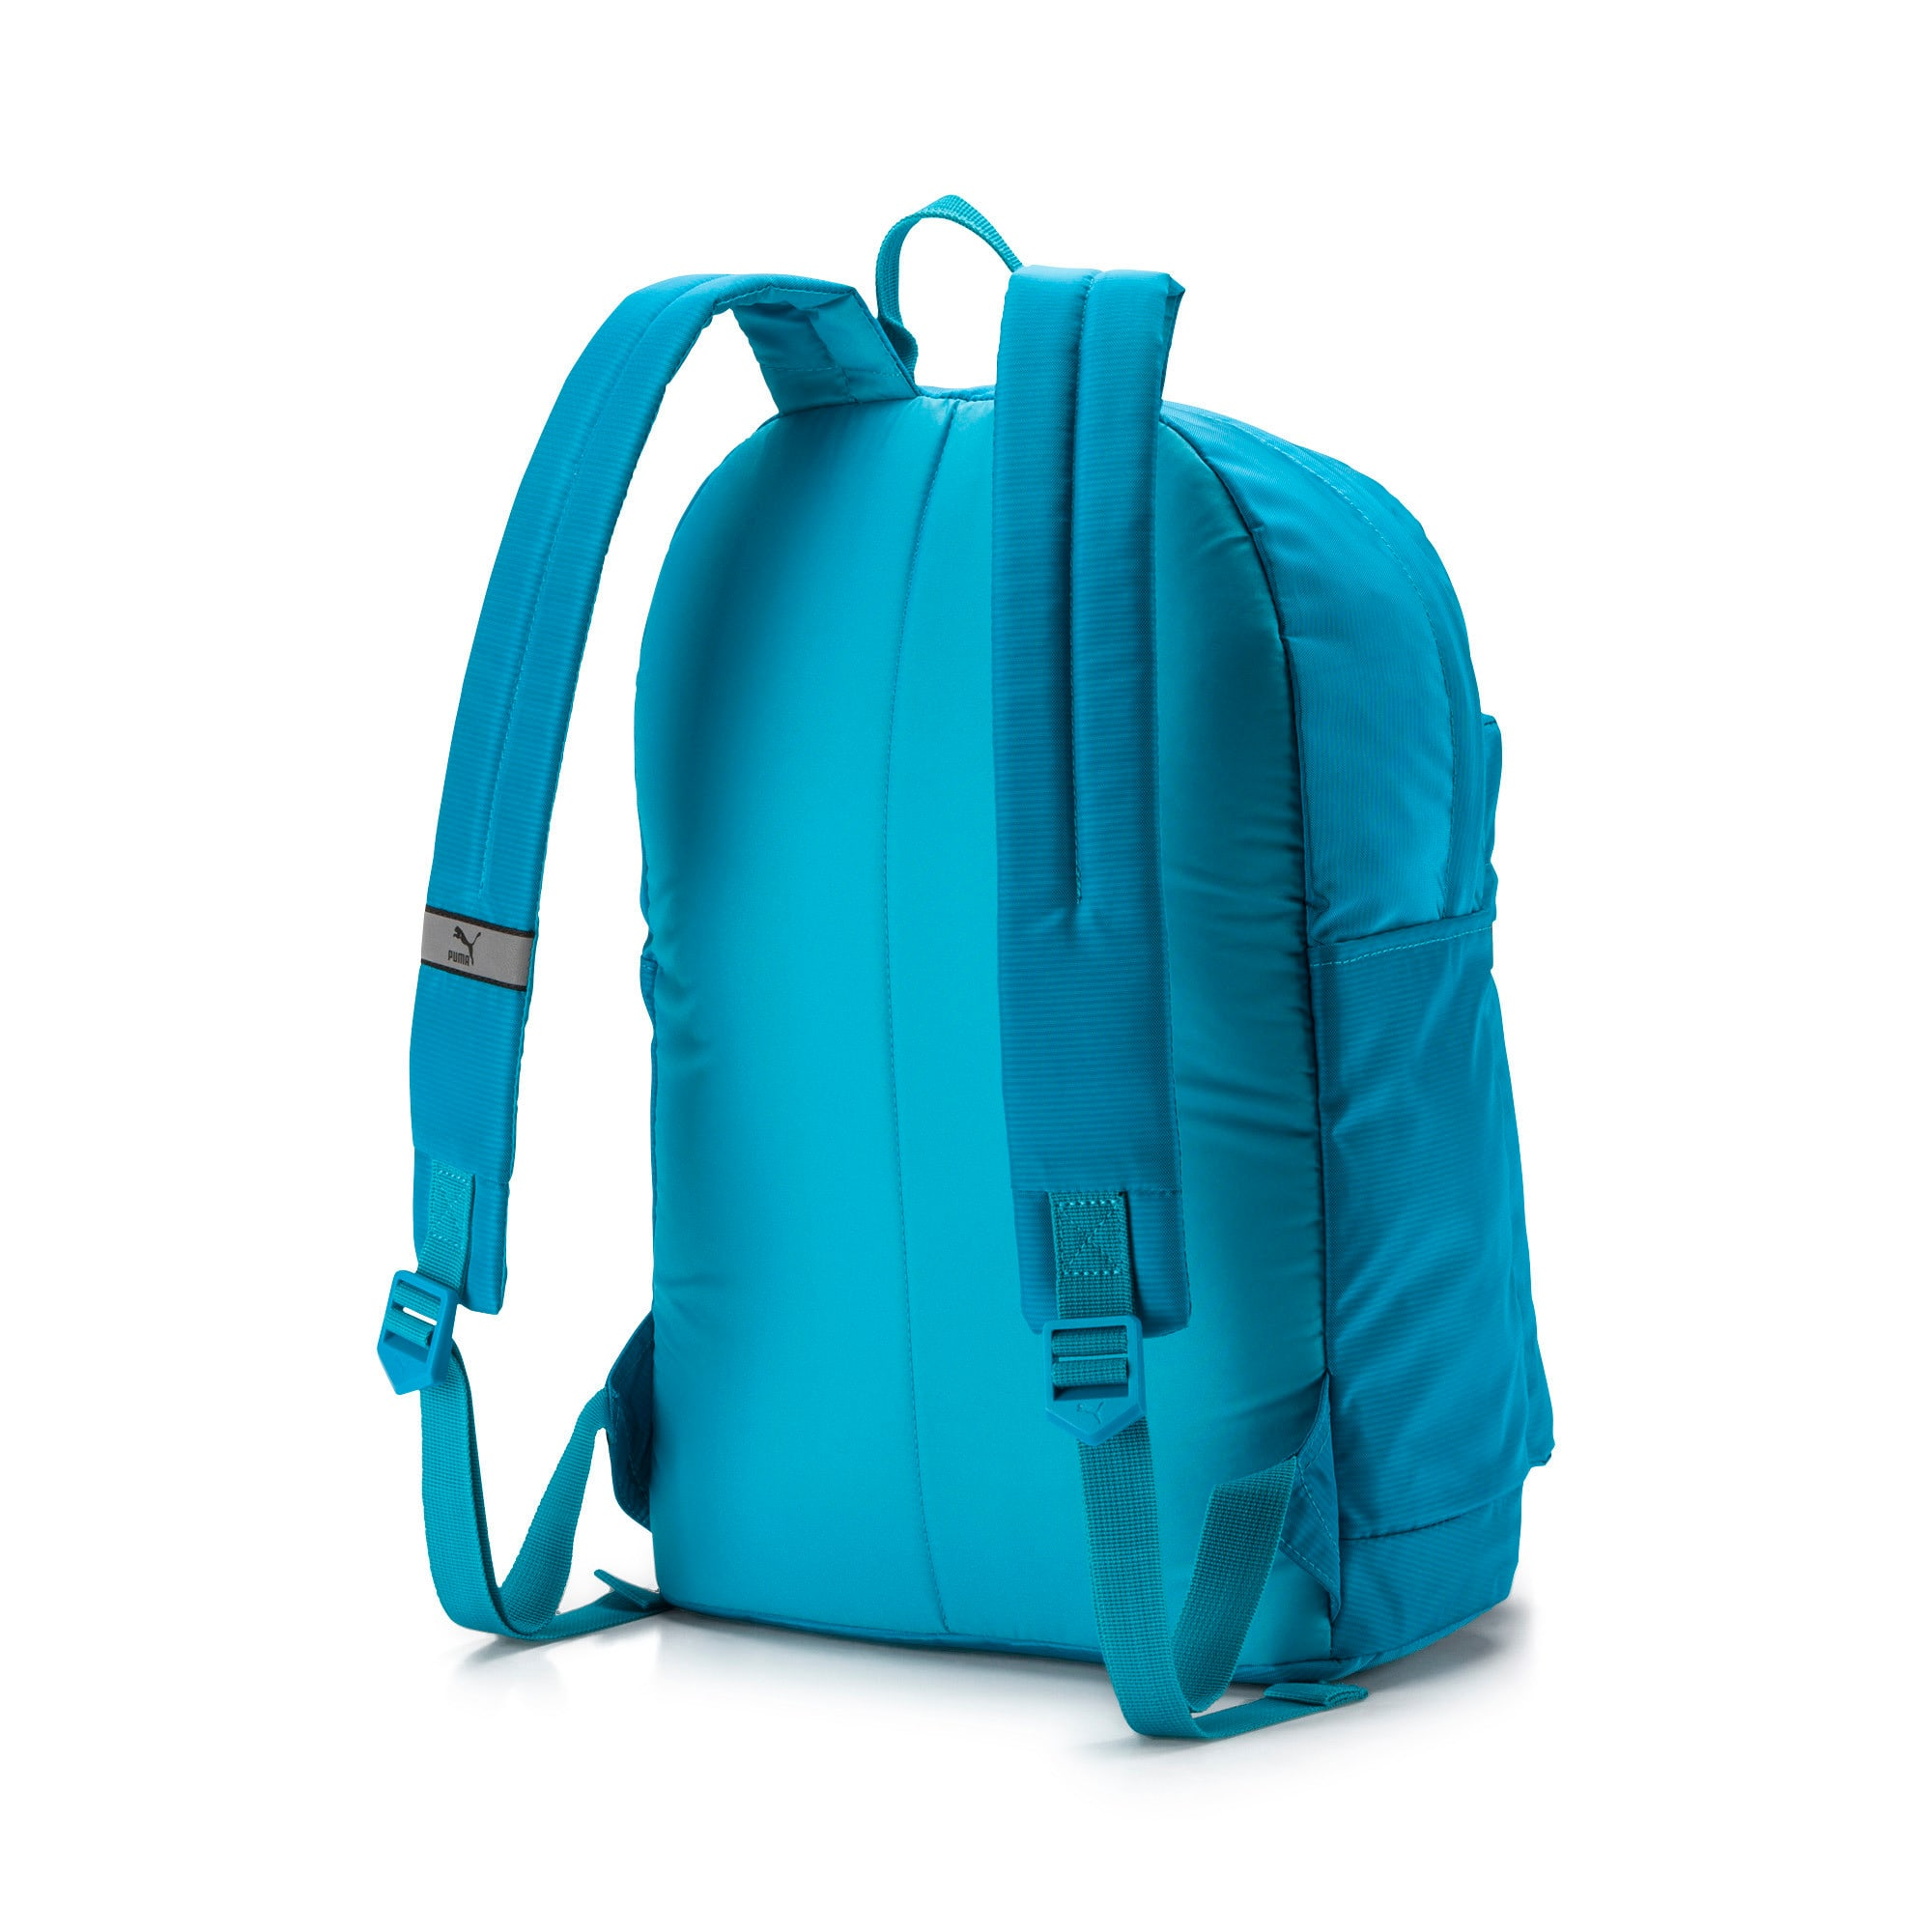 Thumbnail 3 of Originals Backpack, Caribbean Sea, medium